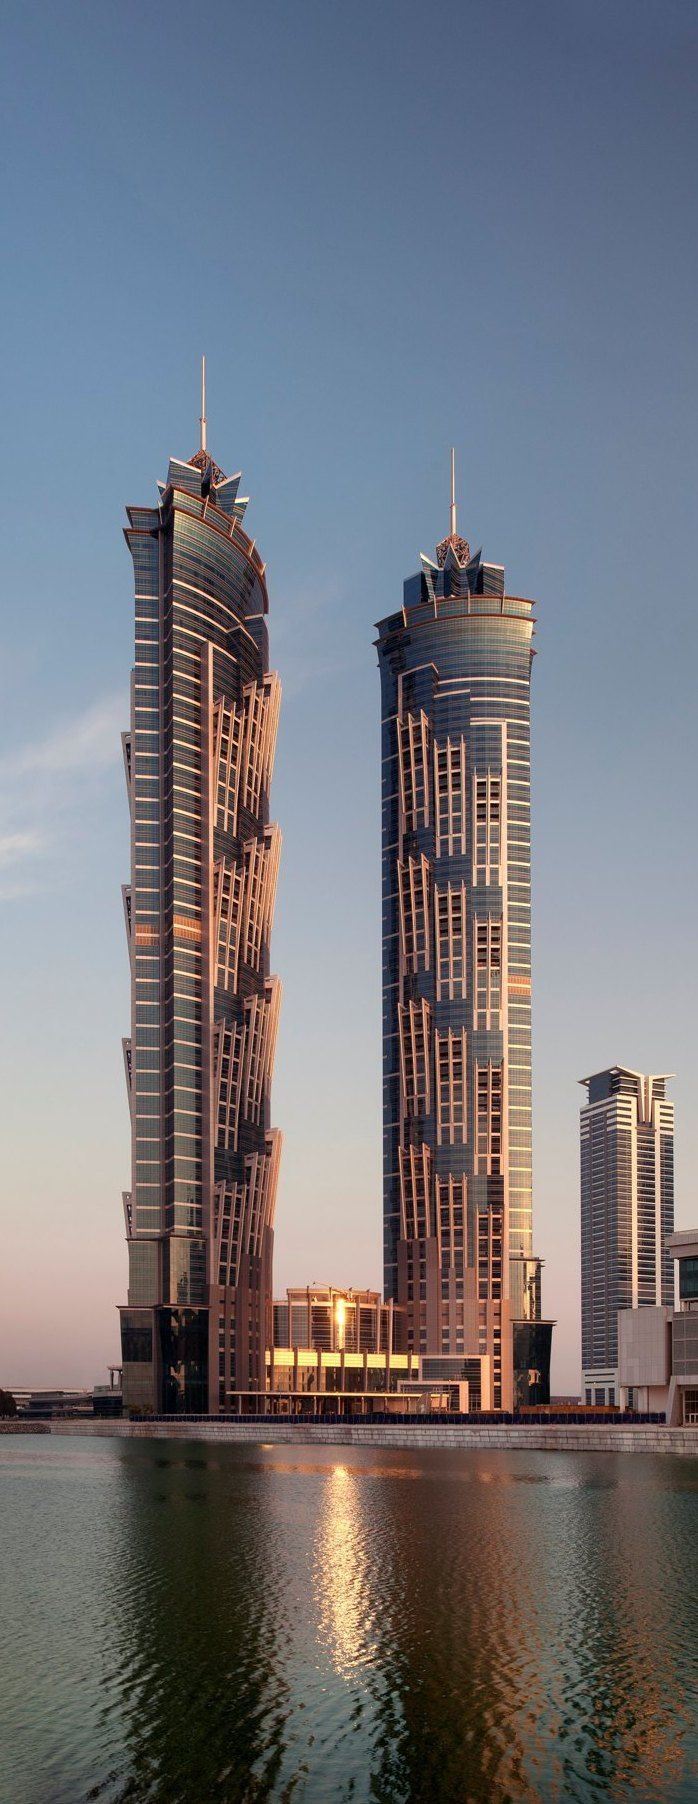 Jw Marriott Marquis Hotel Dubai Uae By Archgroup Consultants 82 Floors Height 355m Architecture Dubai Architecture Skyscraper Architecture Skyscraper